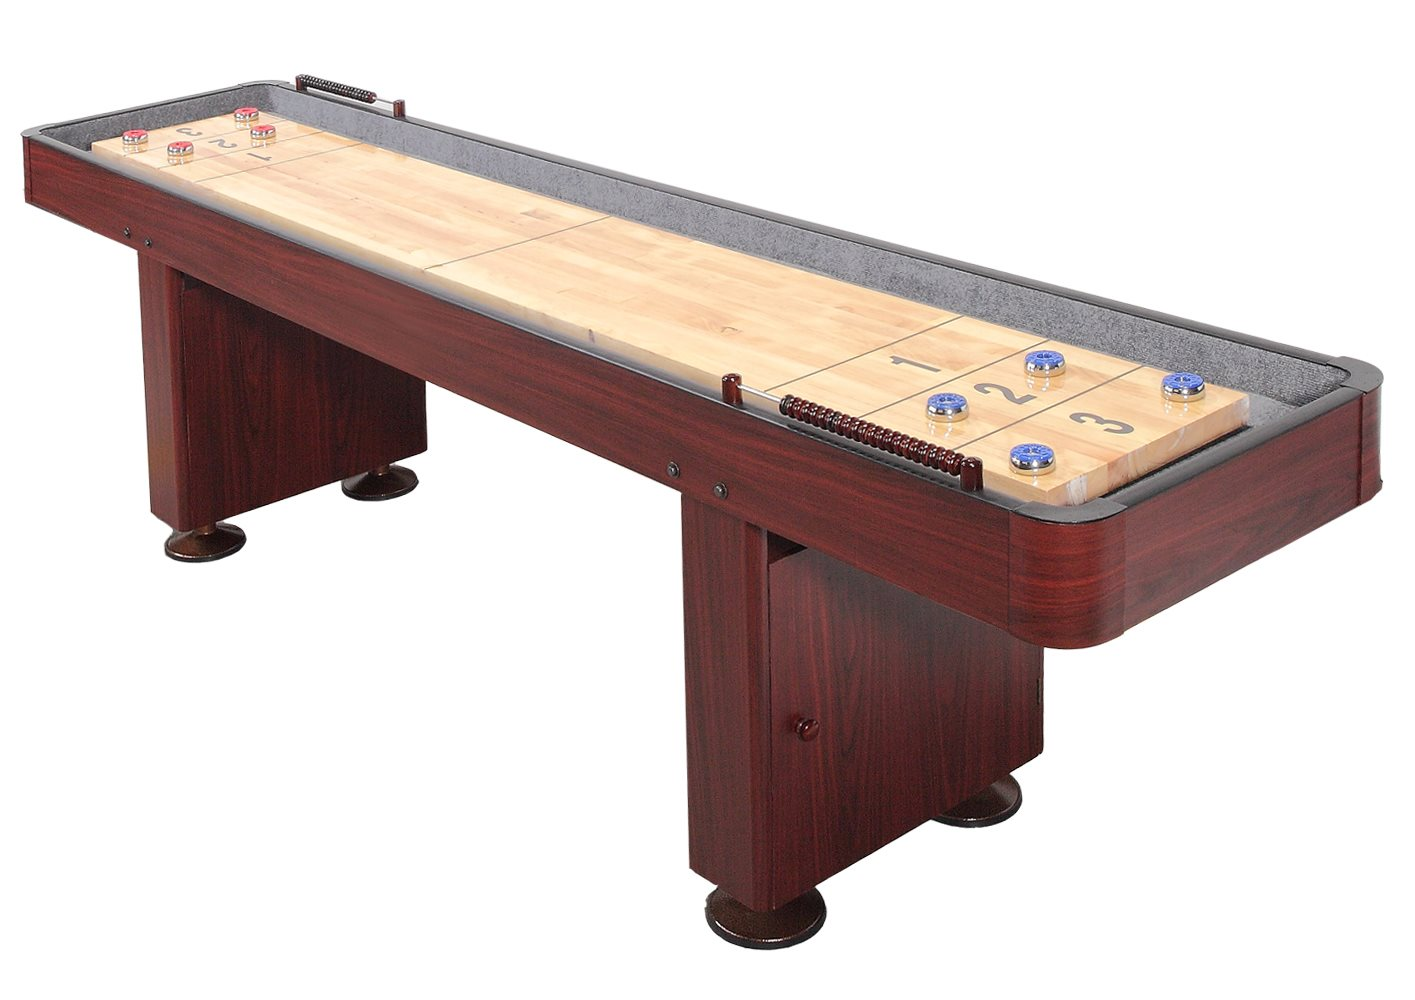 Carmelli Challenger 12 Shuffleboard Table - Dark Cherry Finish